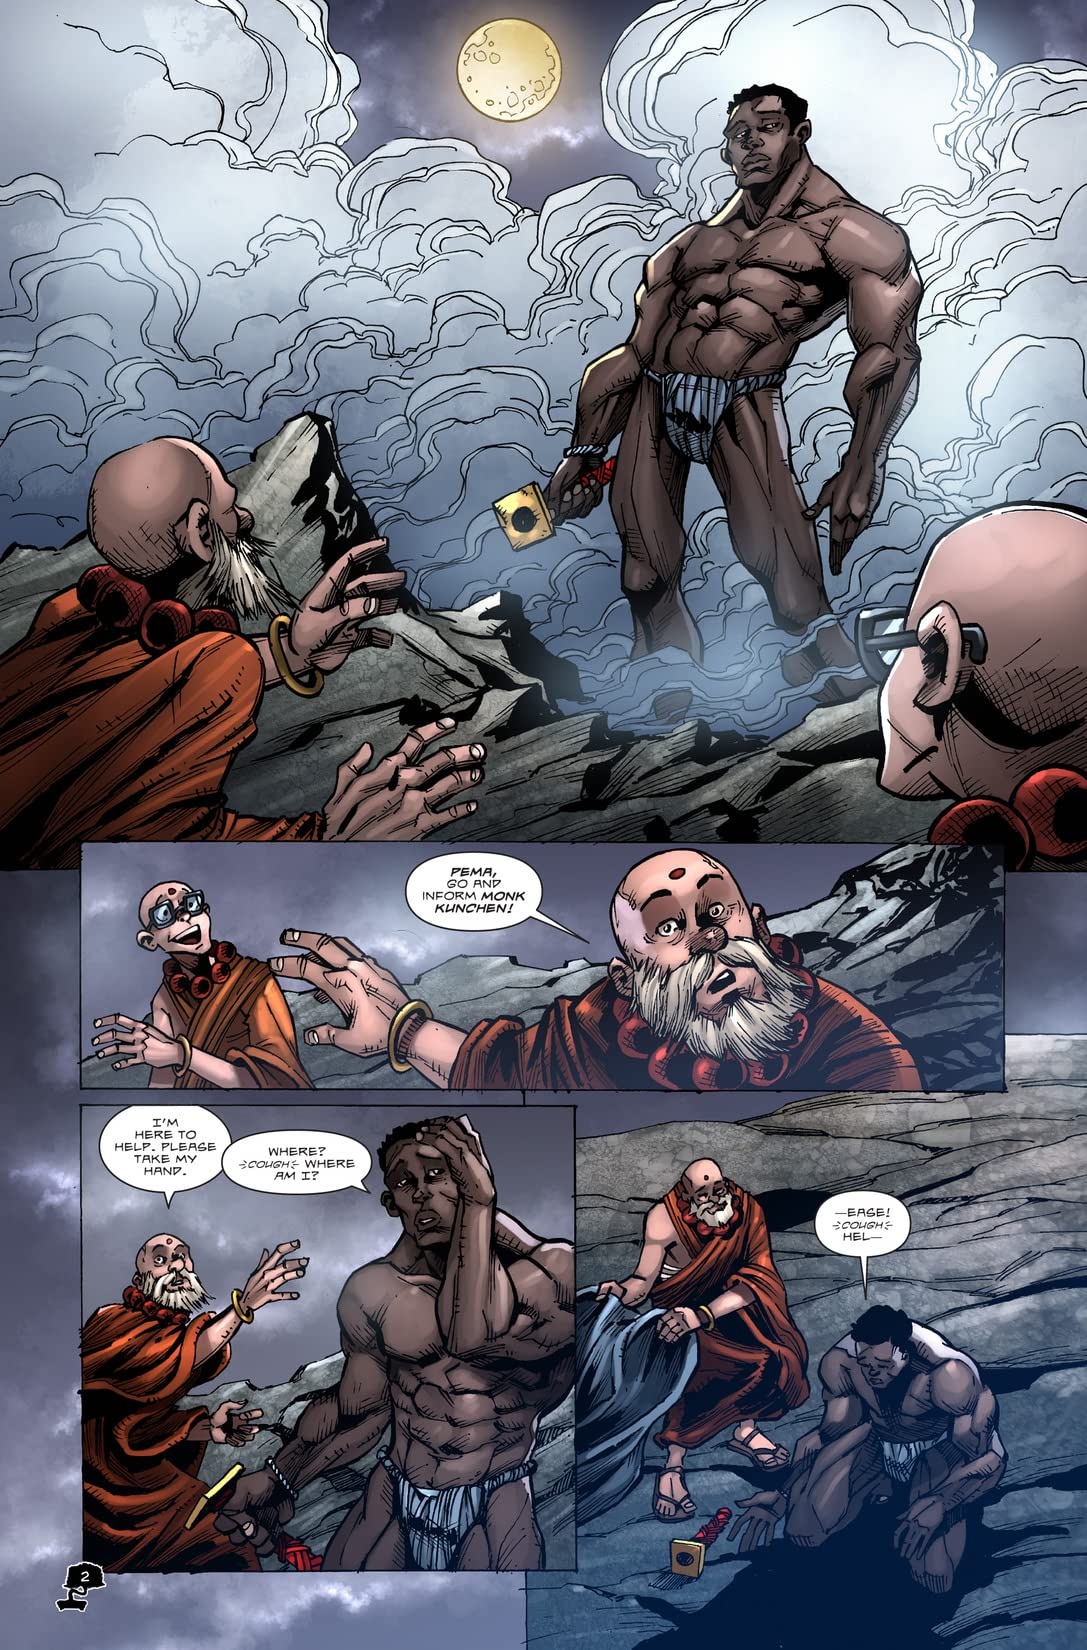 Atonement of a Monk #1